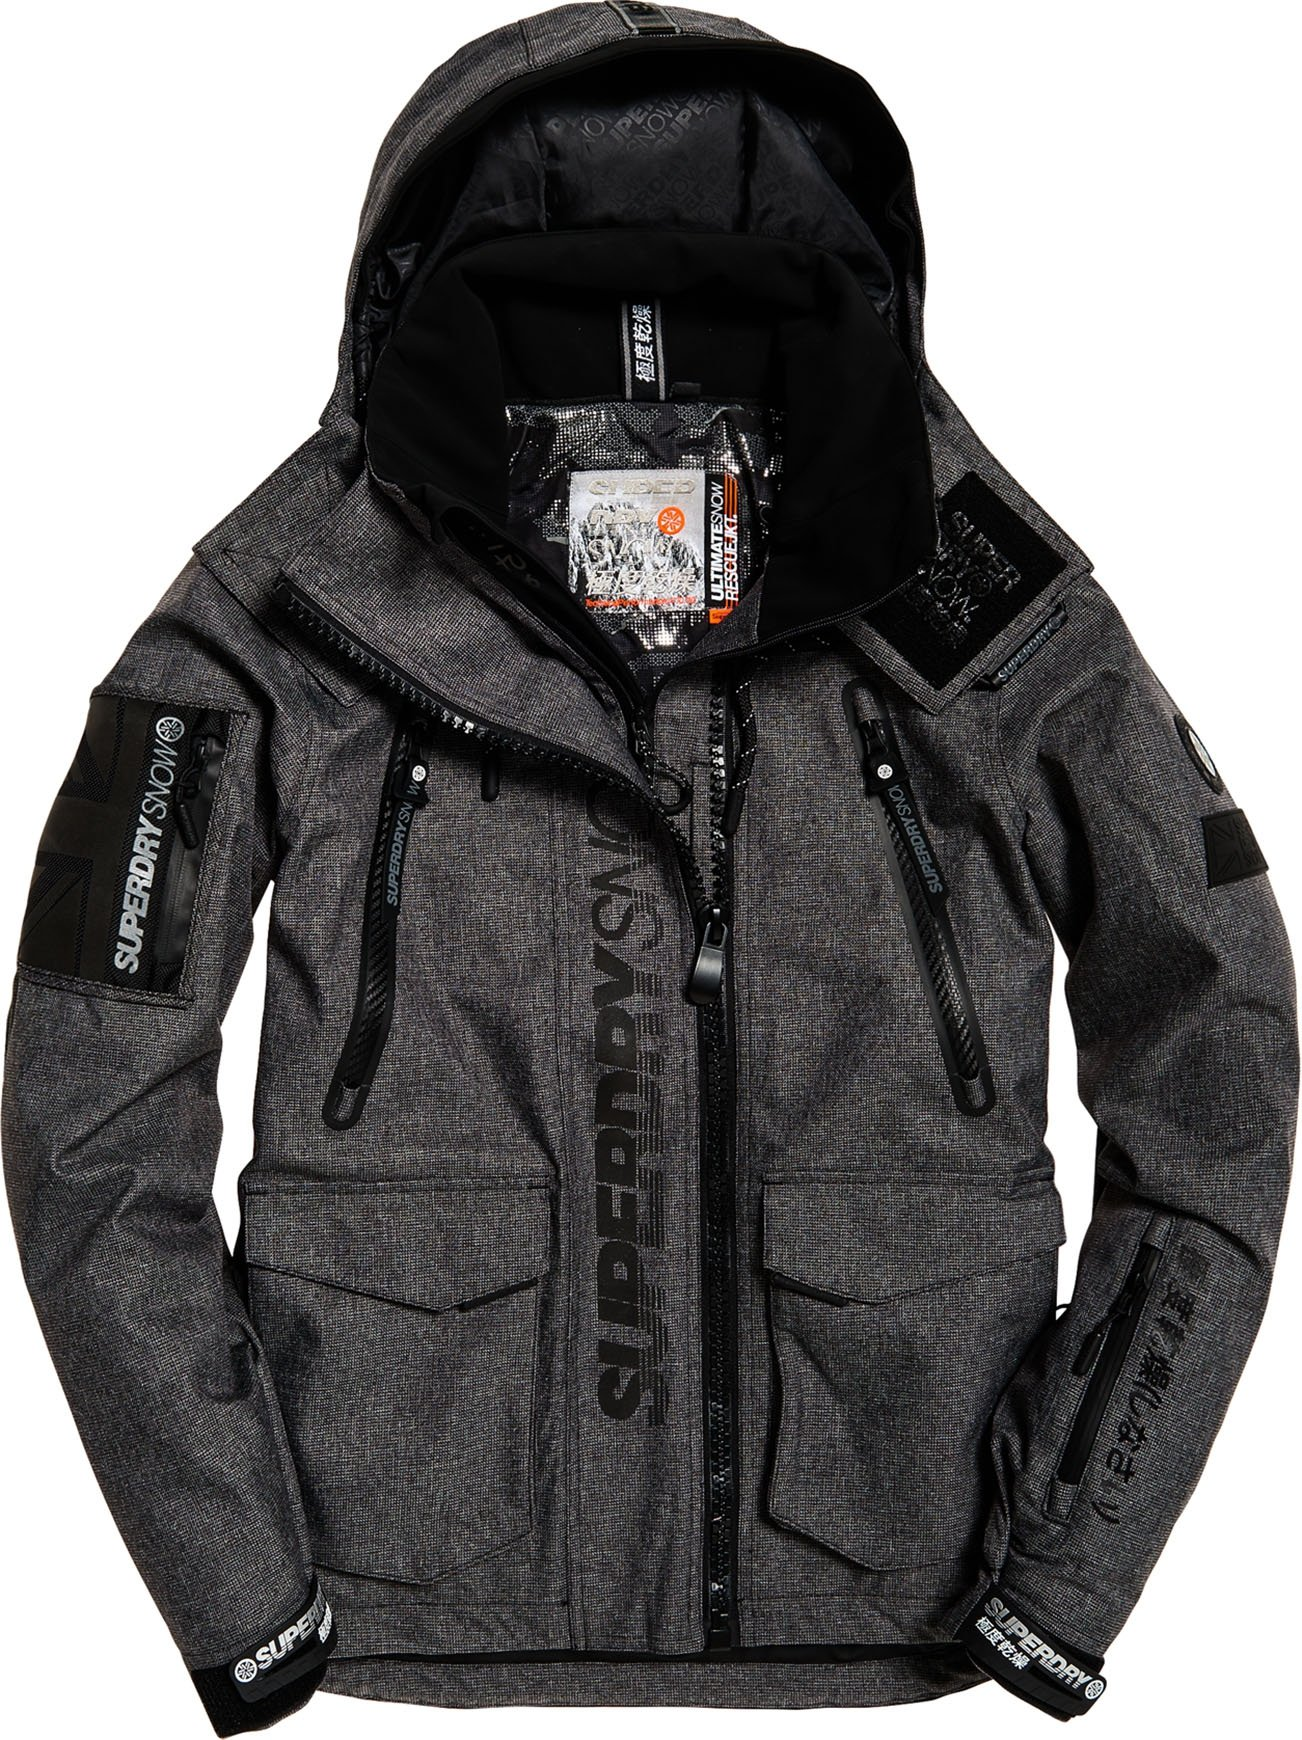 Ultimate Snow Rescue Jacket M Black Tex Rock